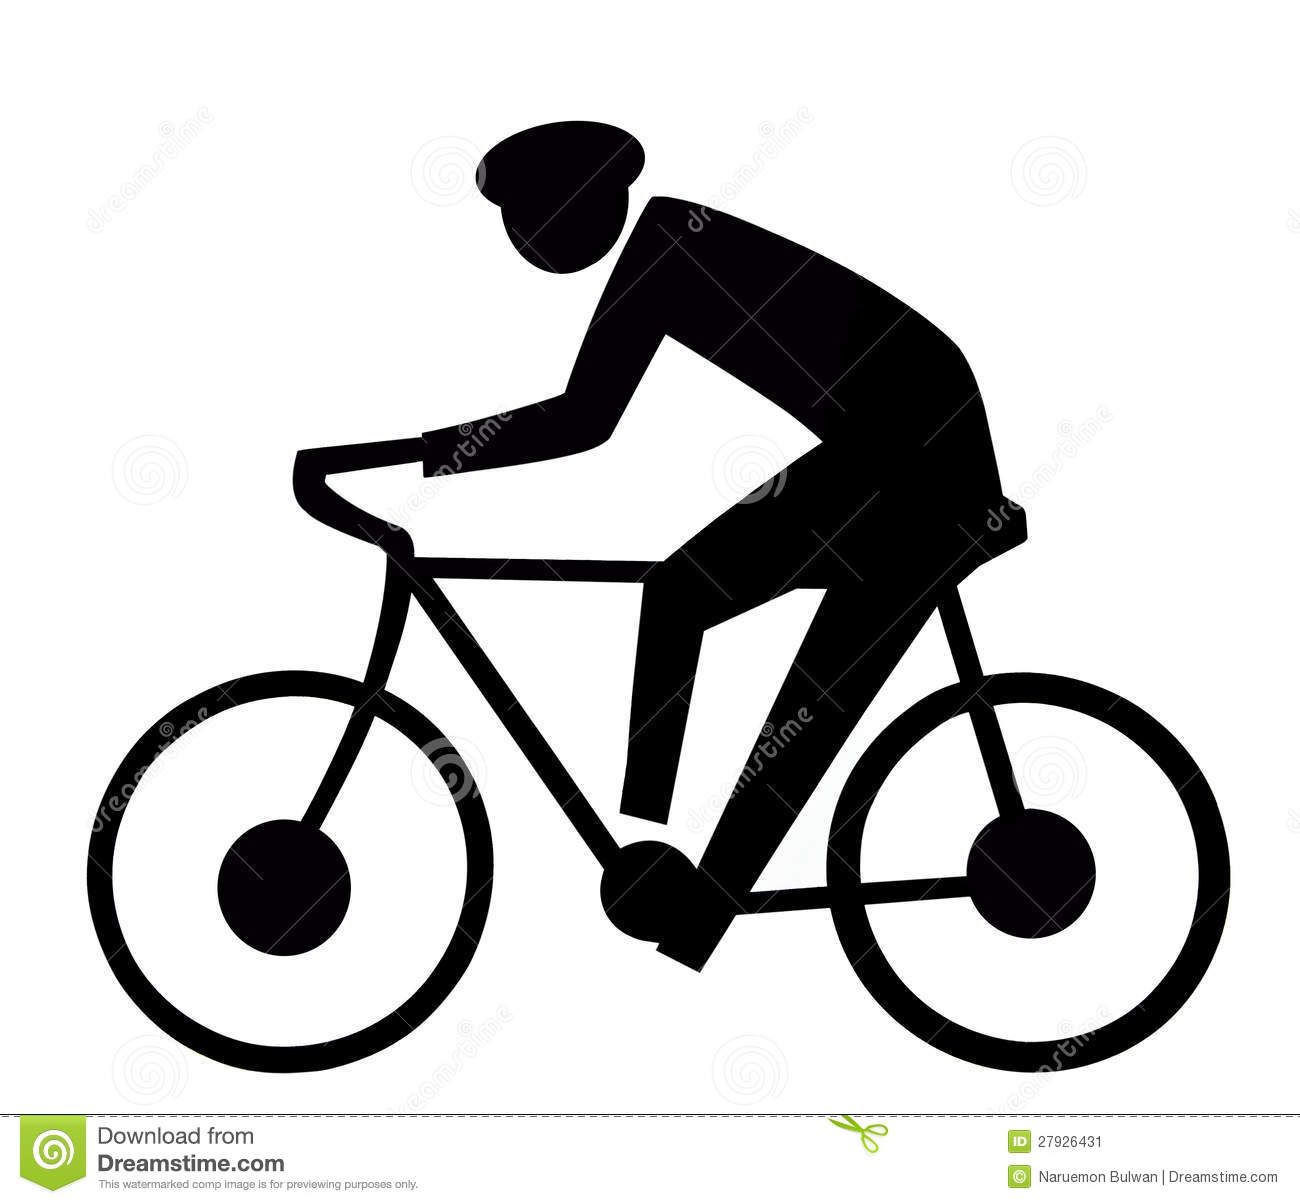 bicycle sign stock image